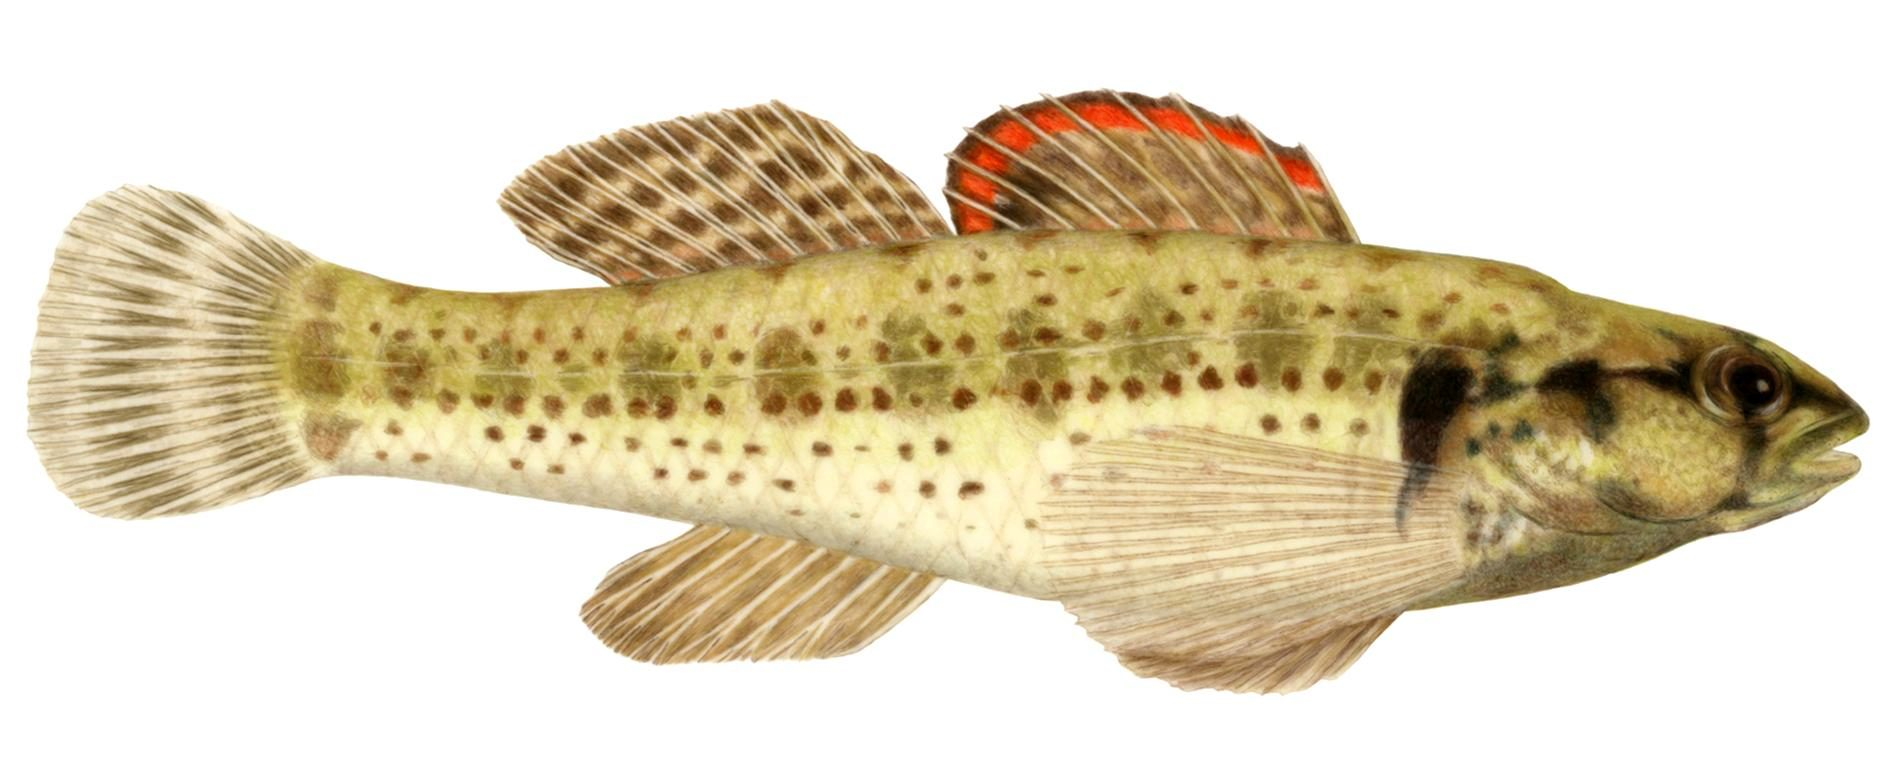 Free picture okaloosa darter illustration for Oily fish representative species